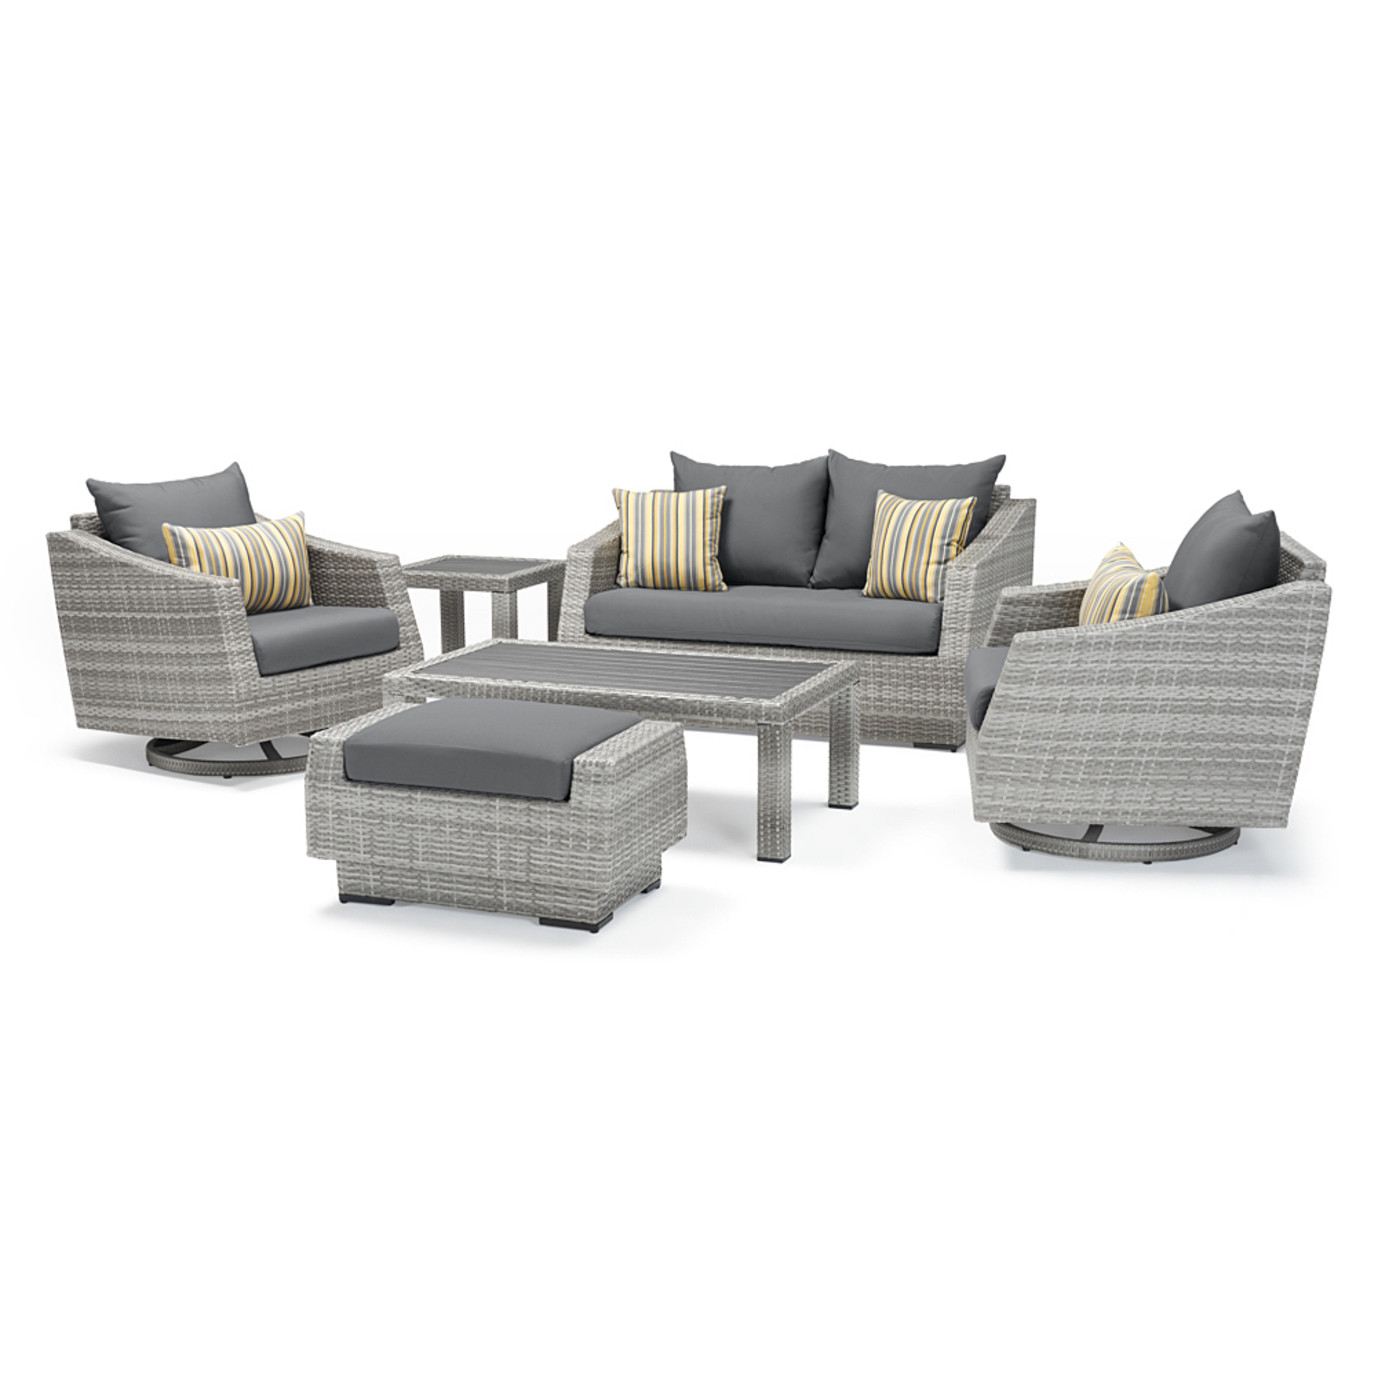 Cannes Deluxe 6 Piece Love & Motion Club Seating Set - Charcoal Gray